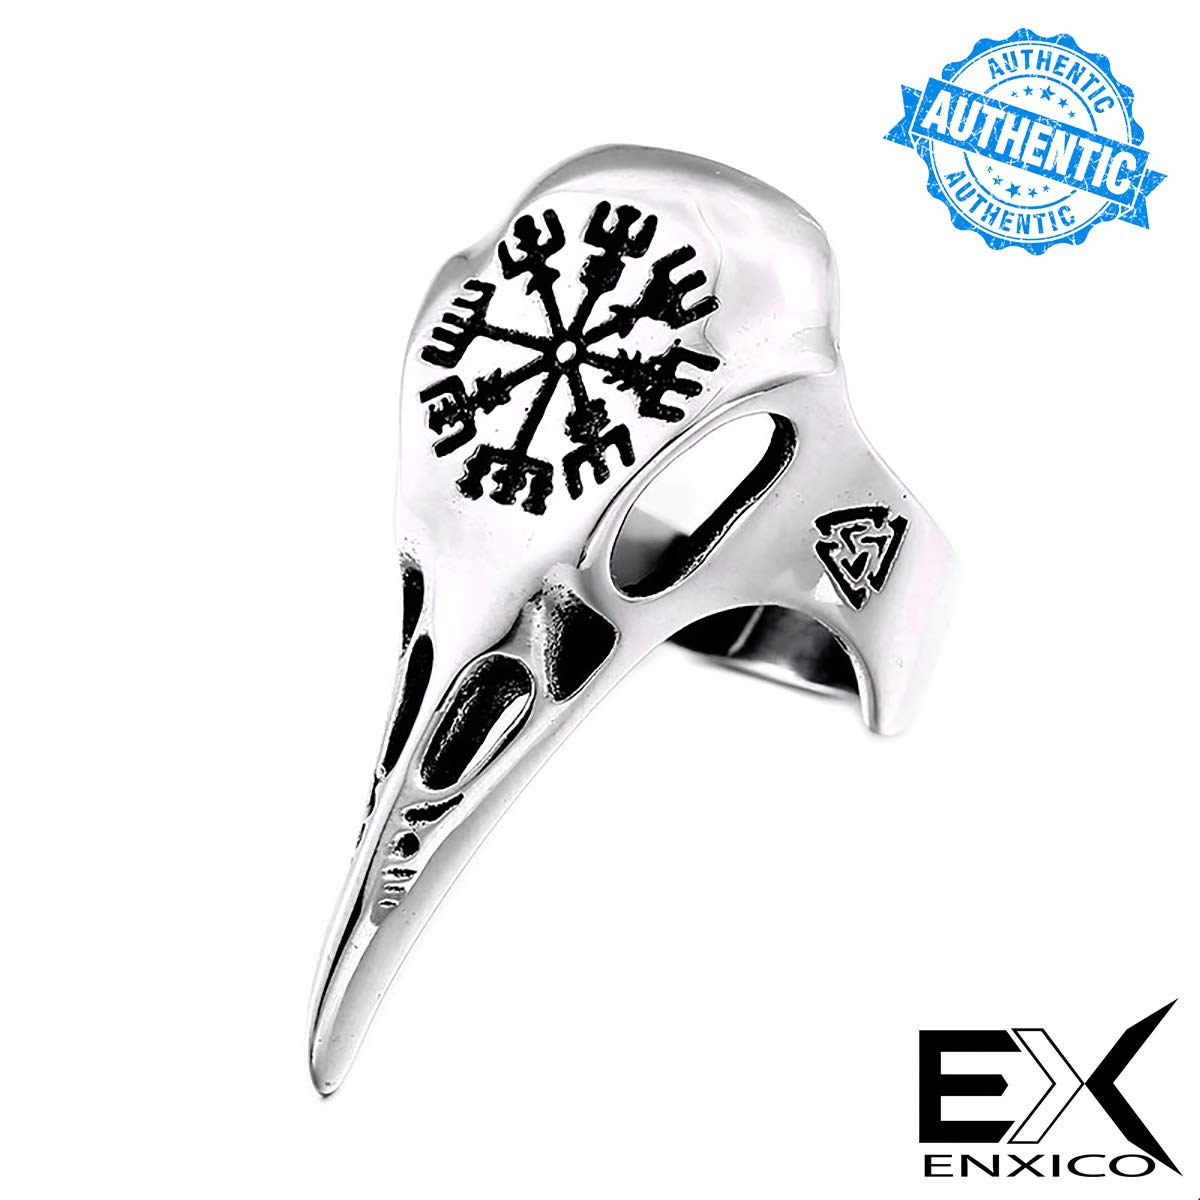 ENXICO Ravens Skull Ring with Aegishjalmur The Helm of Awe Symbol ♢ 316L Stainless Steel ♢ Norse Scandinavian Viking Jewelry|Amazon.com